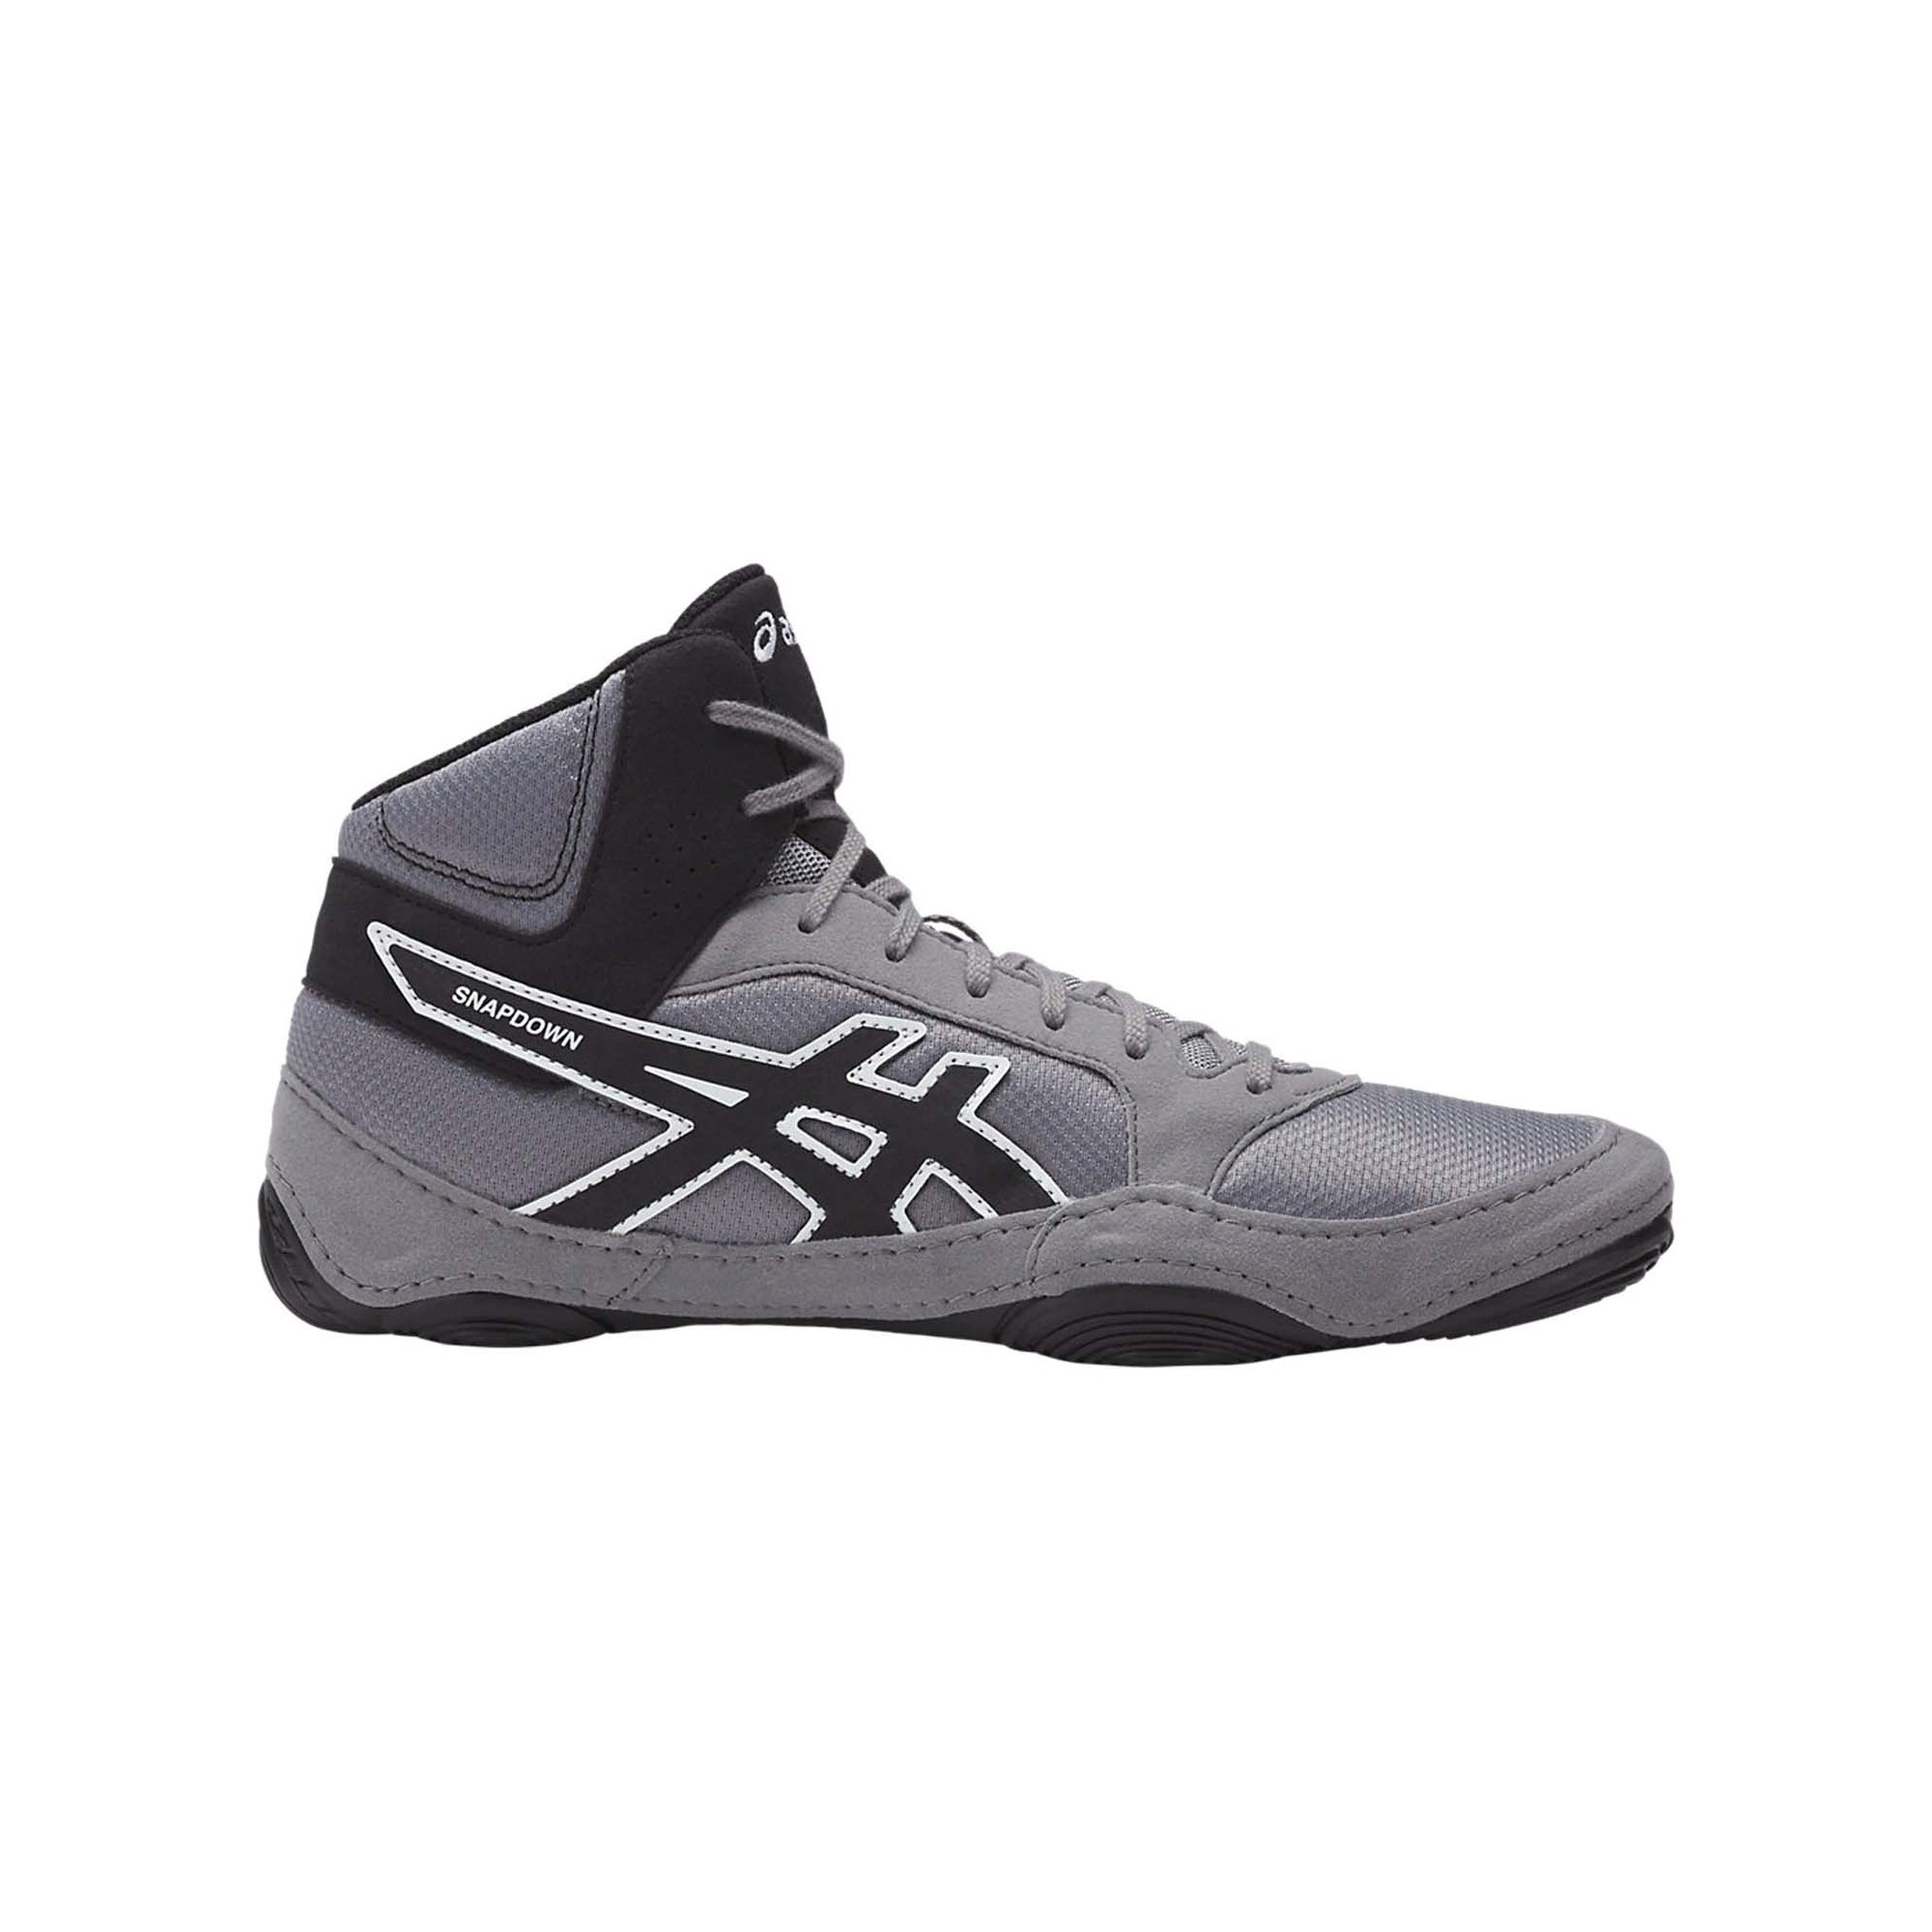 Men's Asics 2 Wrestling Shoes Snapdown Aluminumblacksilver SqUMVpLzG